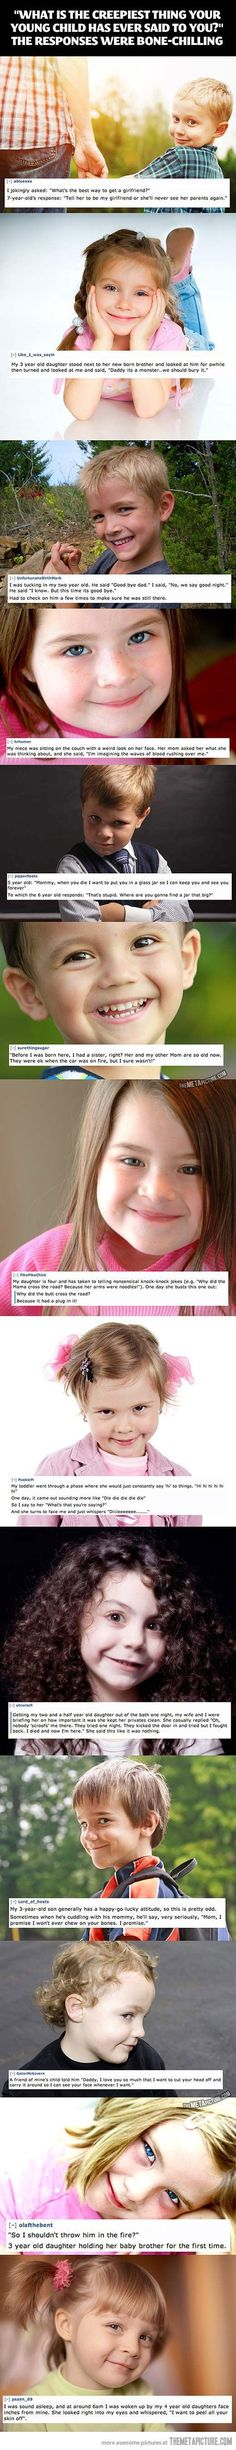 Open it and expand. You've got to read it. Kids can be freaking creepy!!